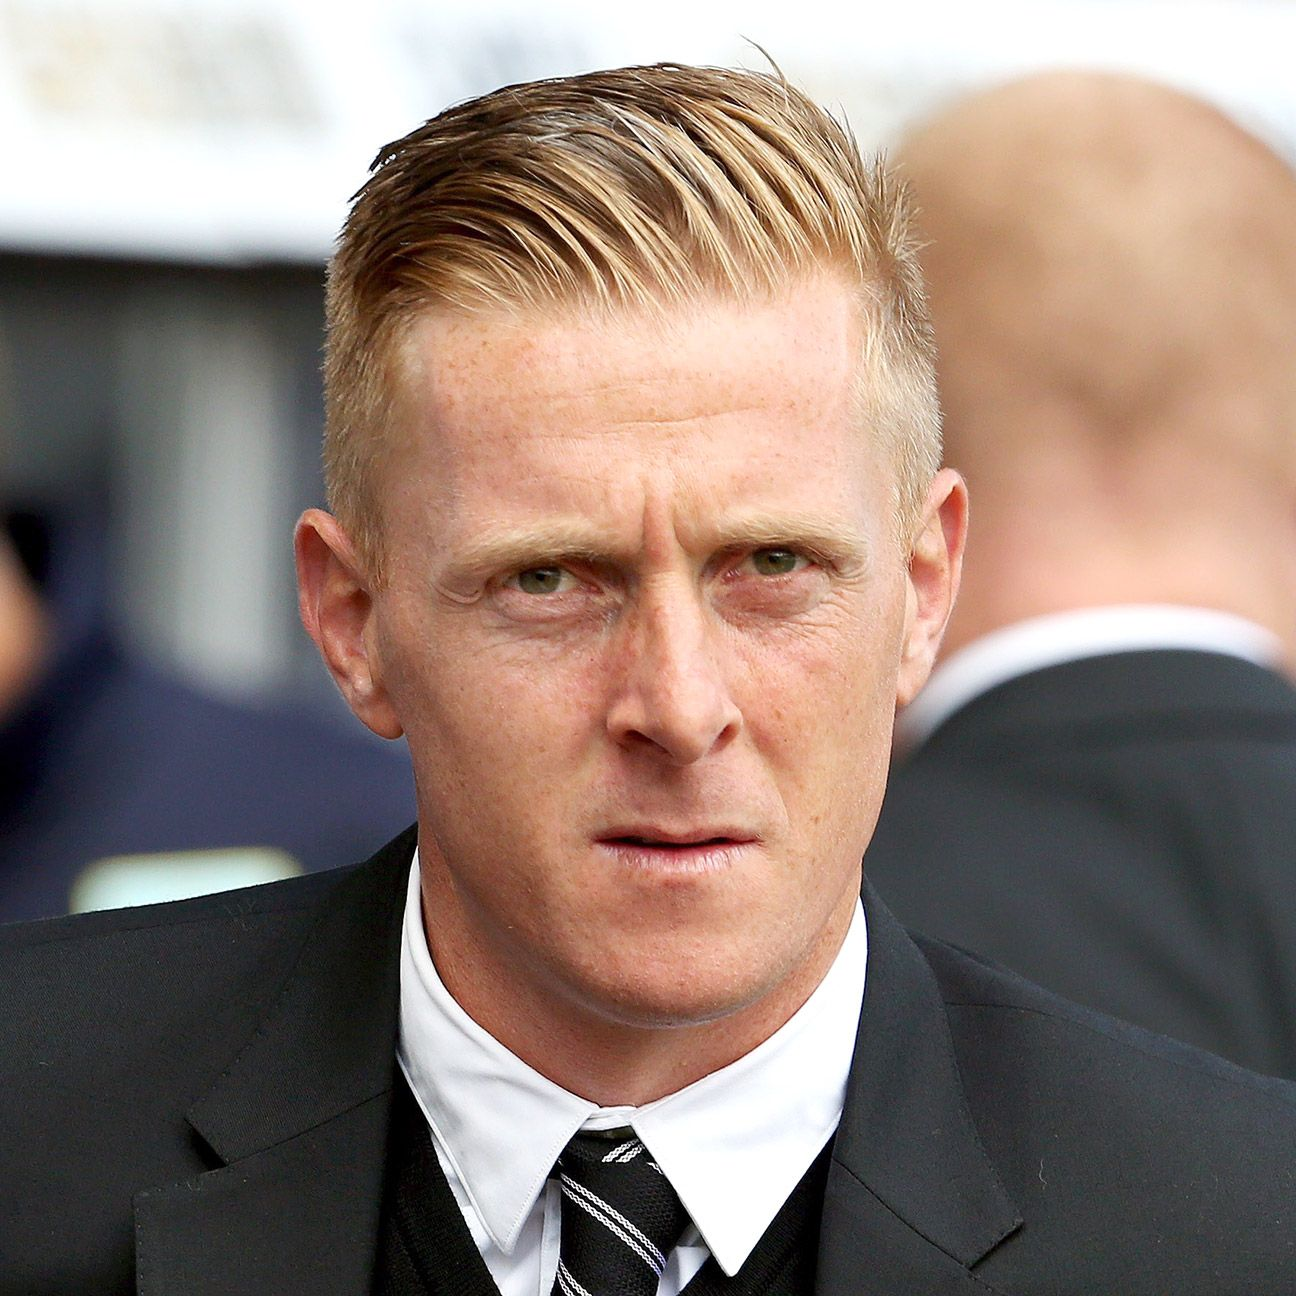 Swansea supporters hope manager Garry Monk will firm up spots at left back and midfield before the close of the transfer window.